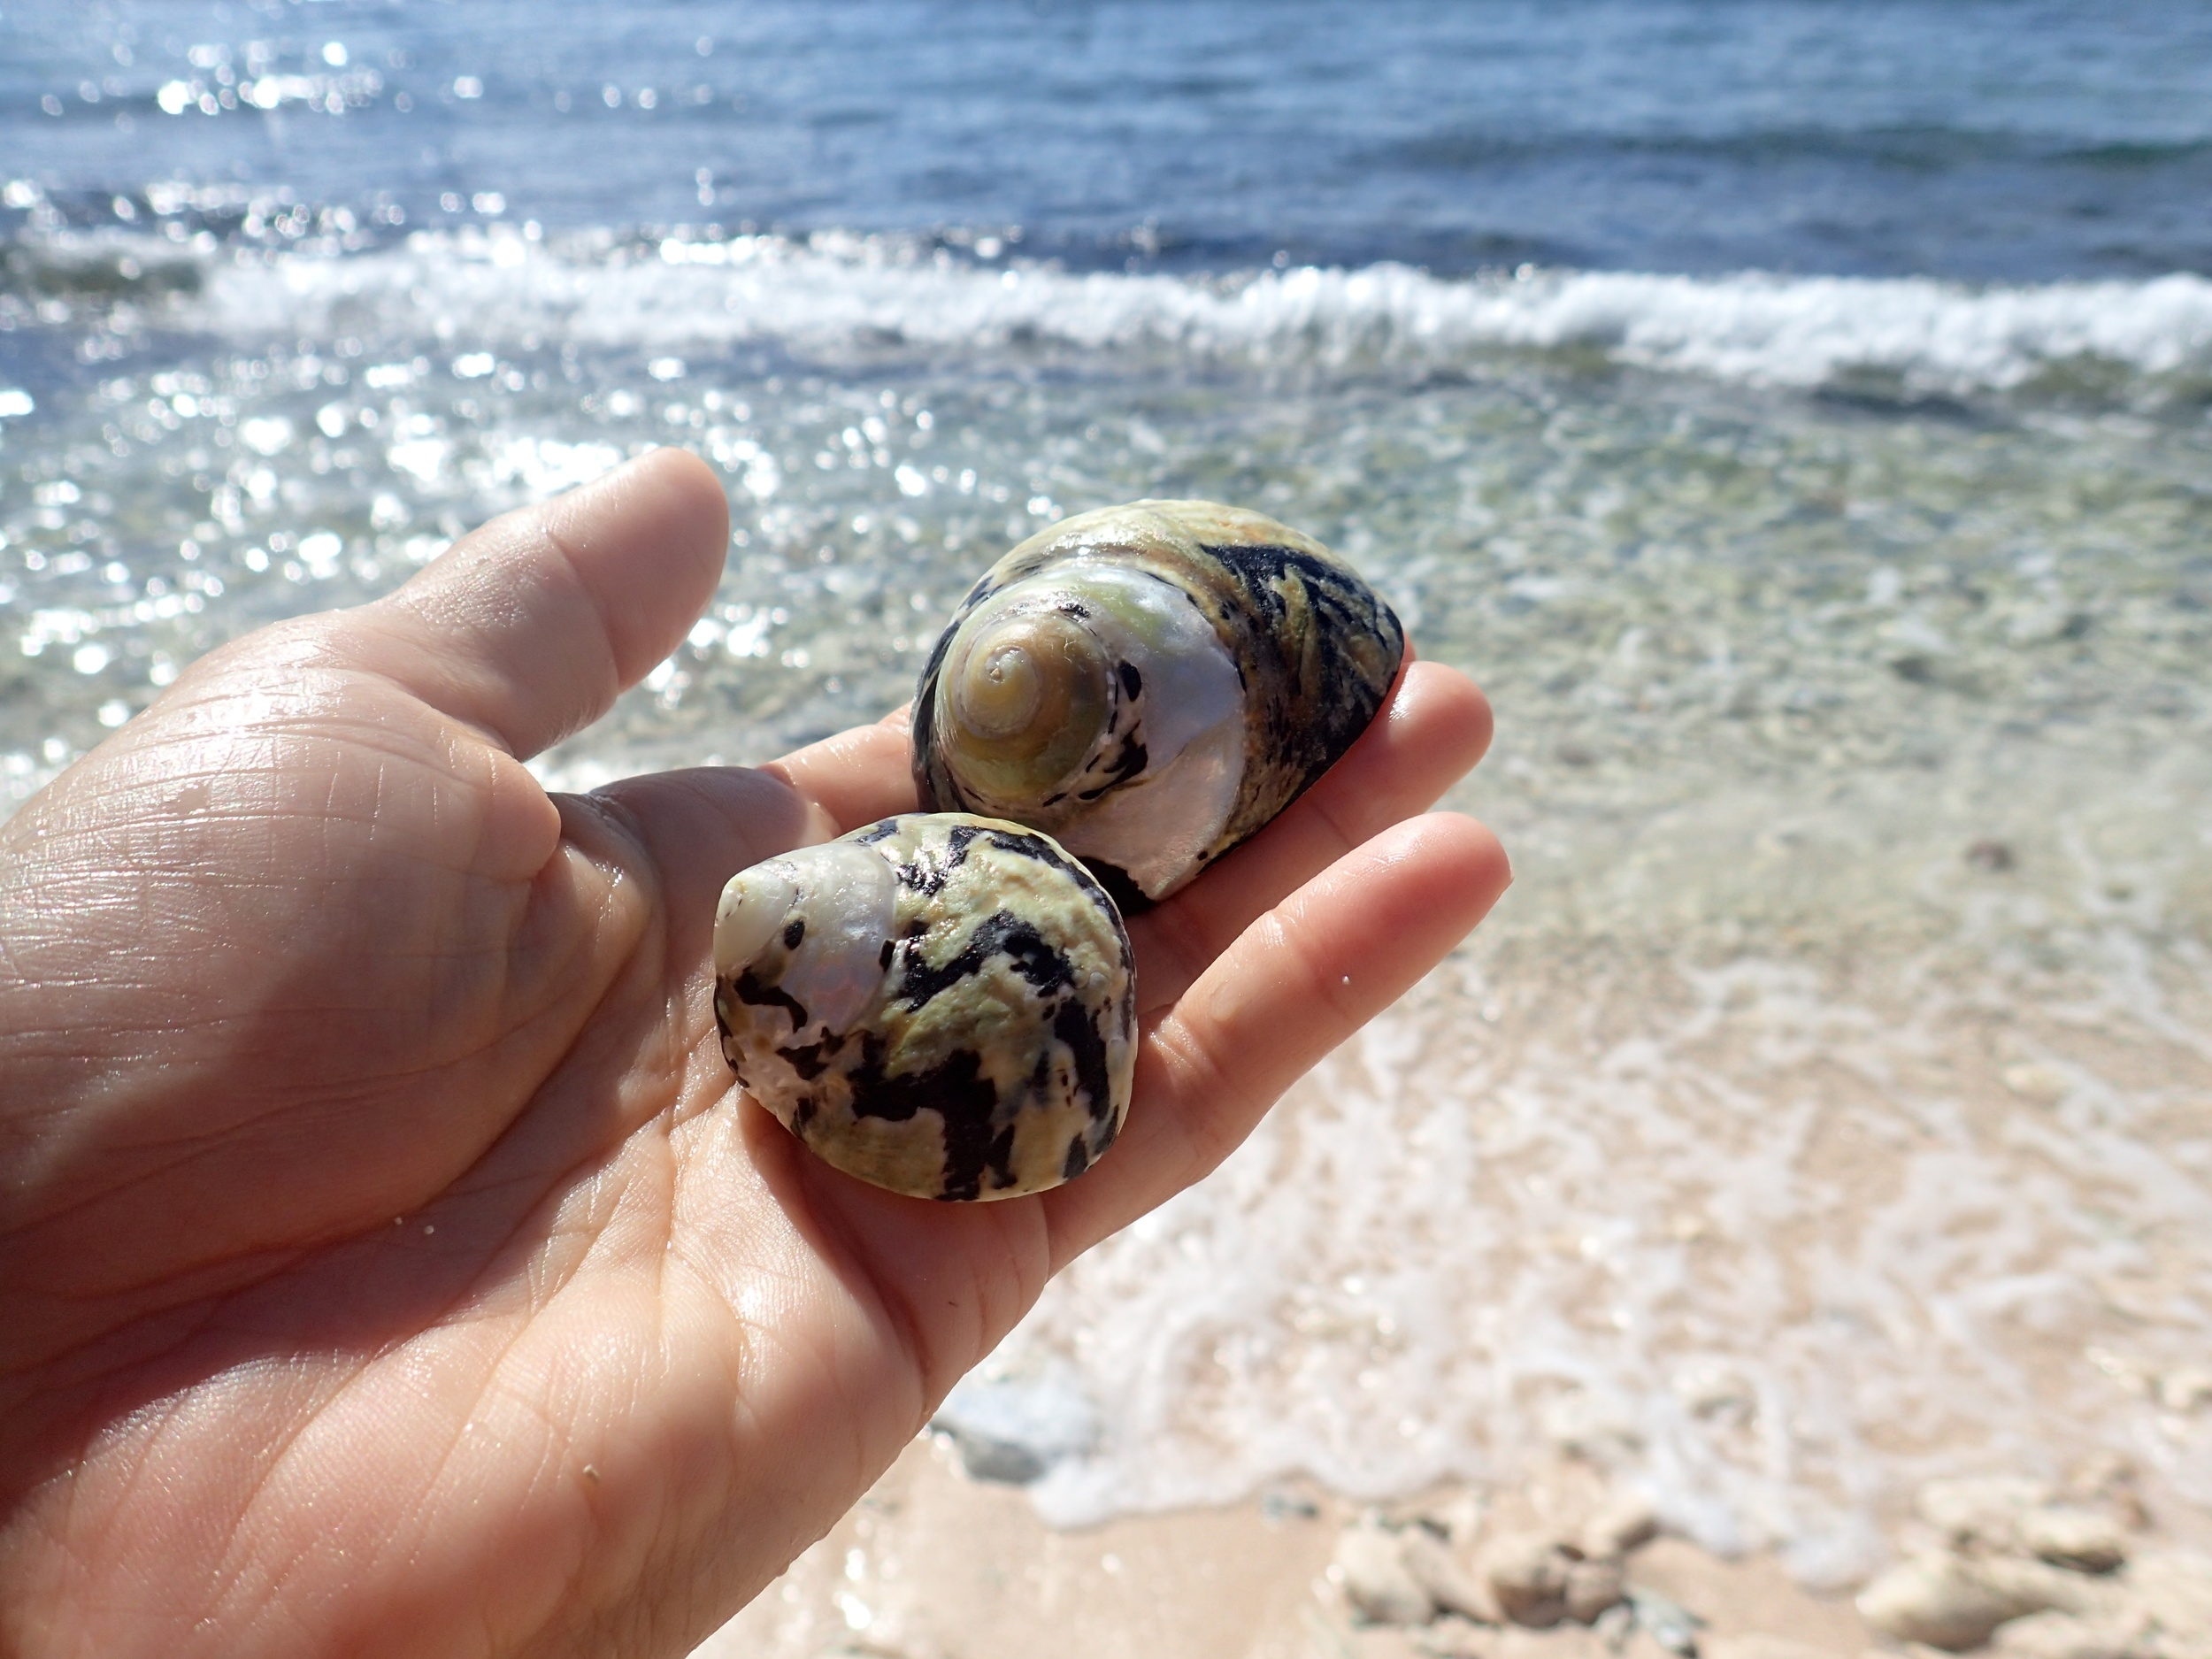 West Indian top shells at Reef Bay